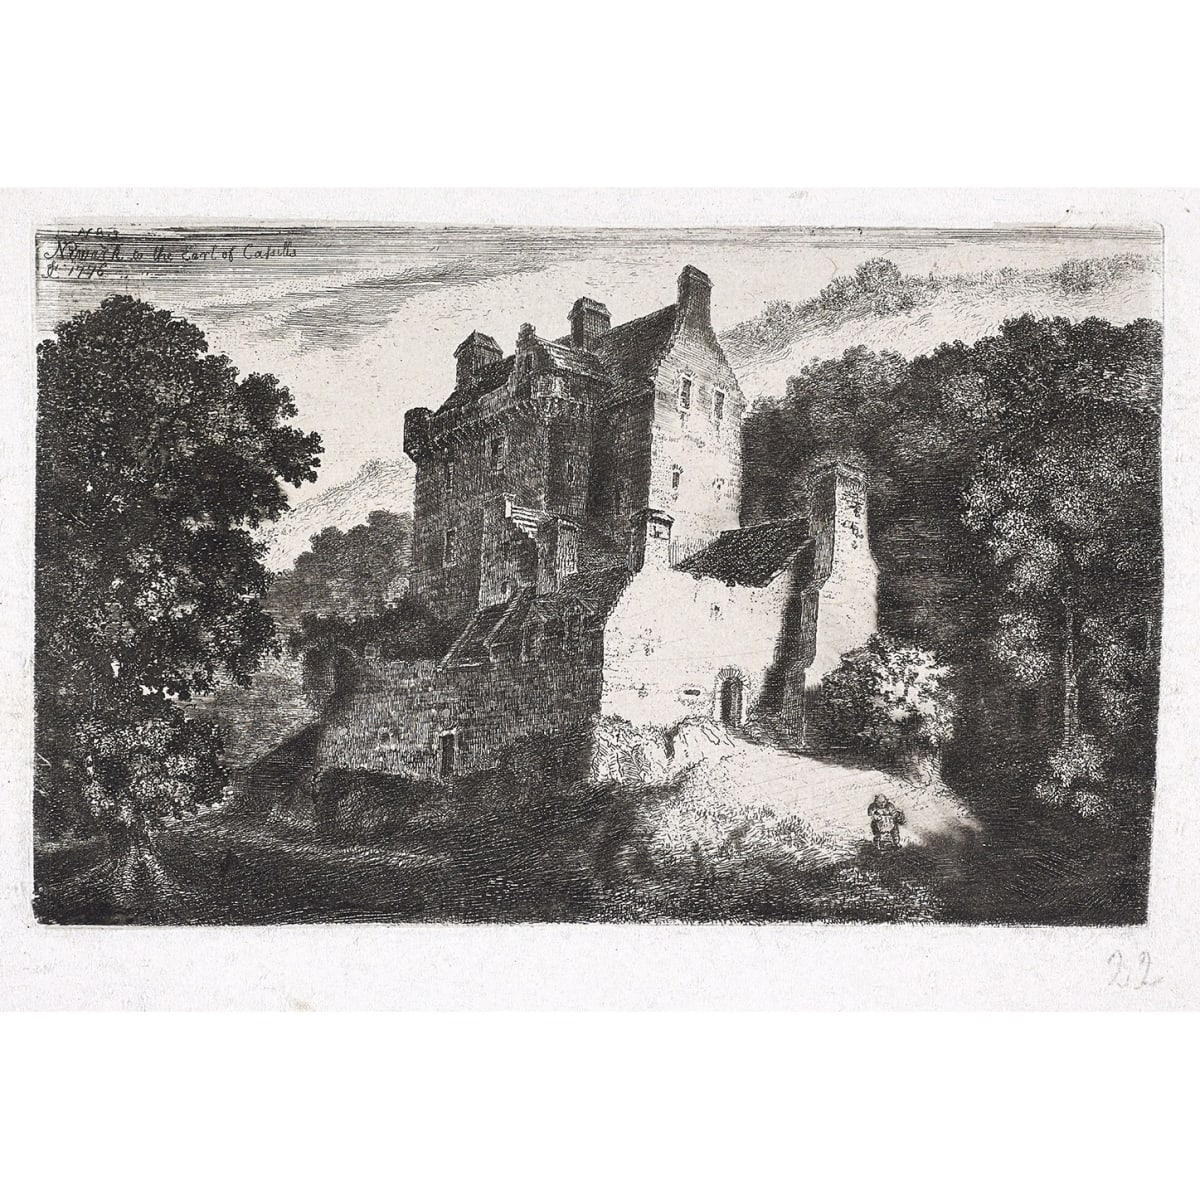 John Clerk of Eldin Newark Castle, 1776 titled, initialled JC, dated 1776 and inscribed 'No.53' in plate etching and drypoint 4 x 6 1/4 inches third state